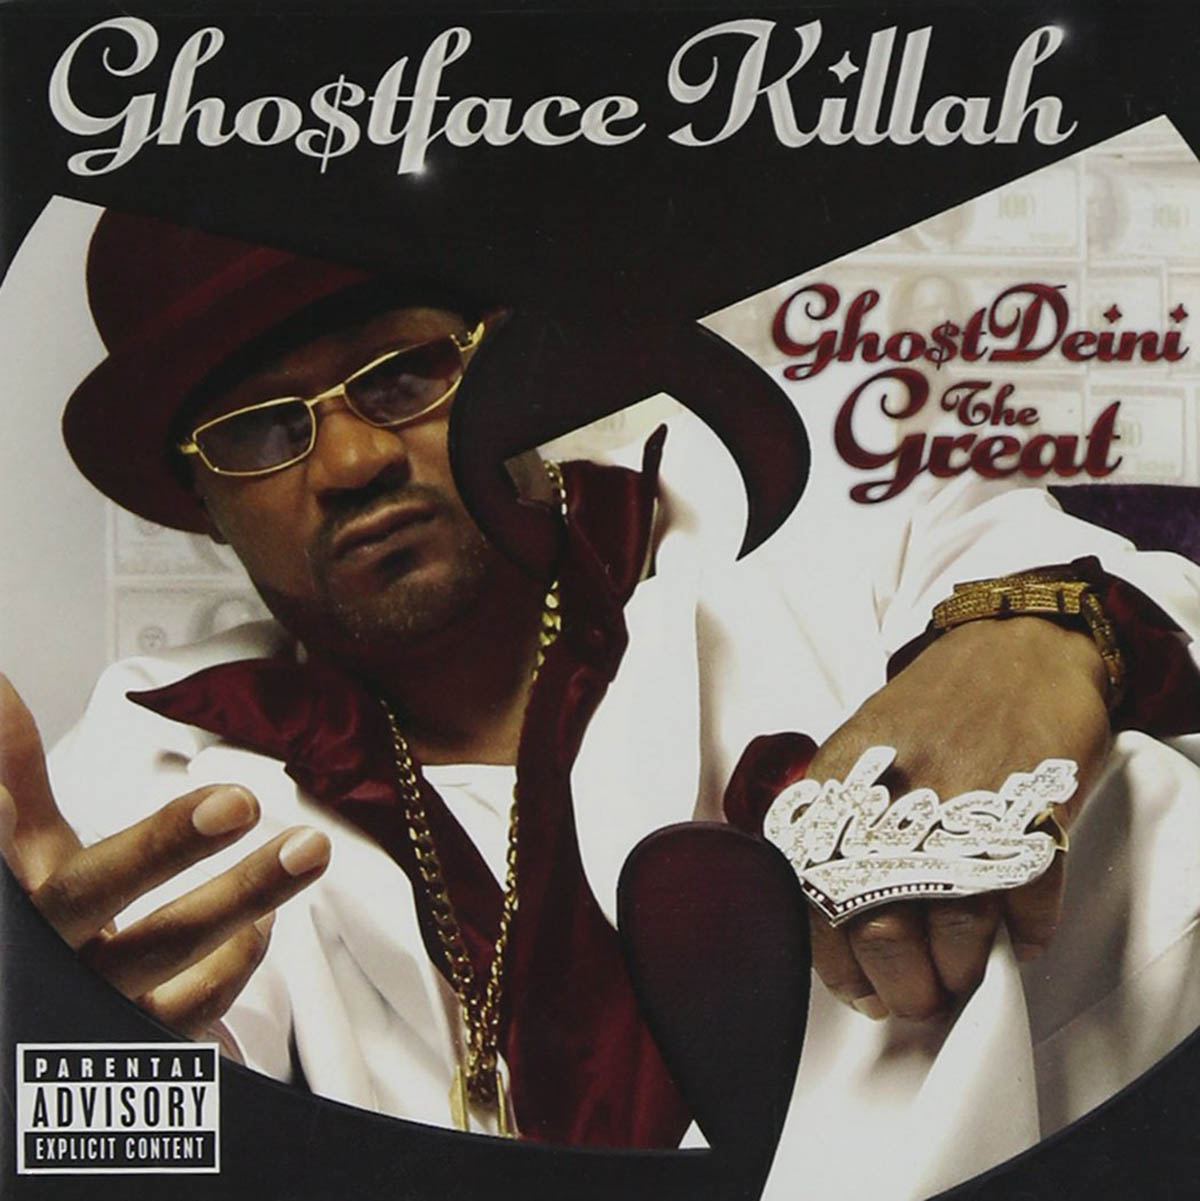 Ghostface Killah, Ghostdeini the Great